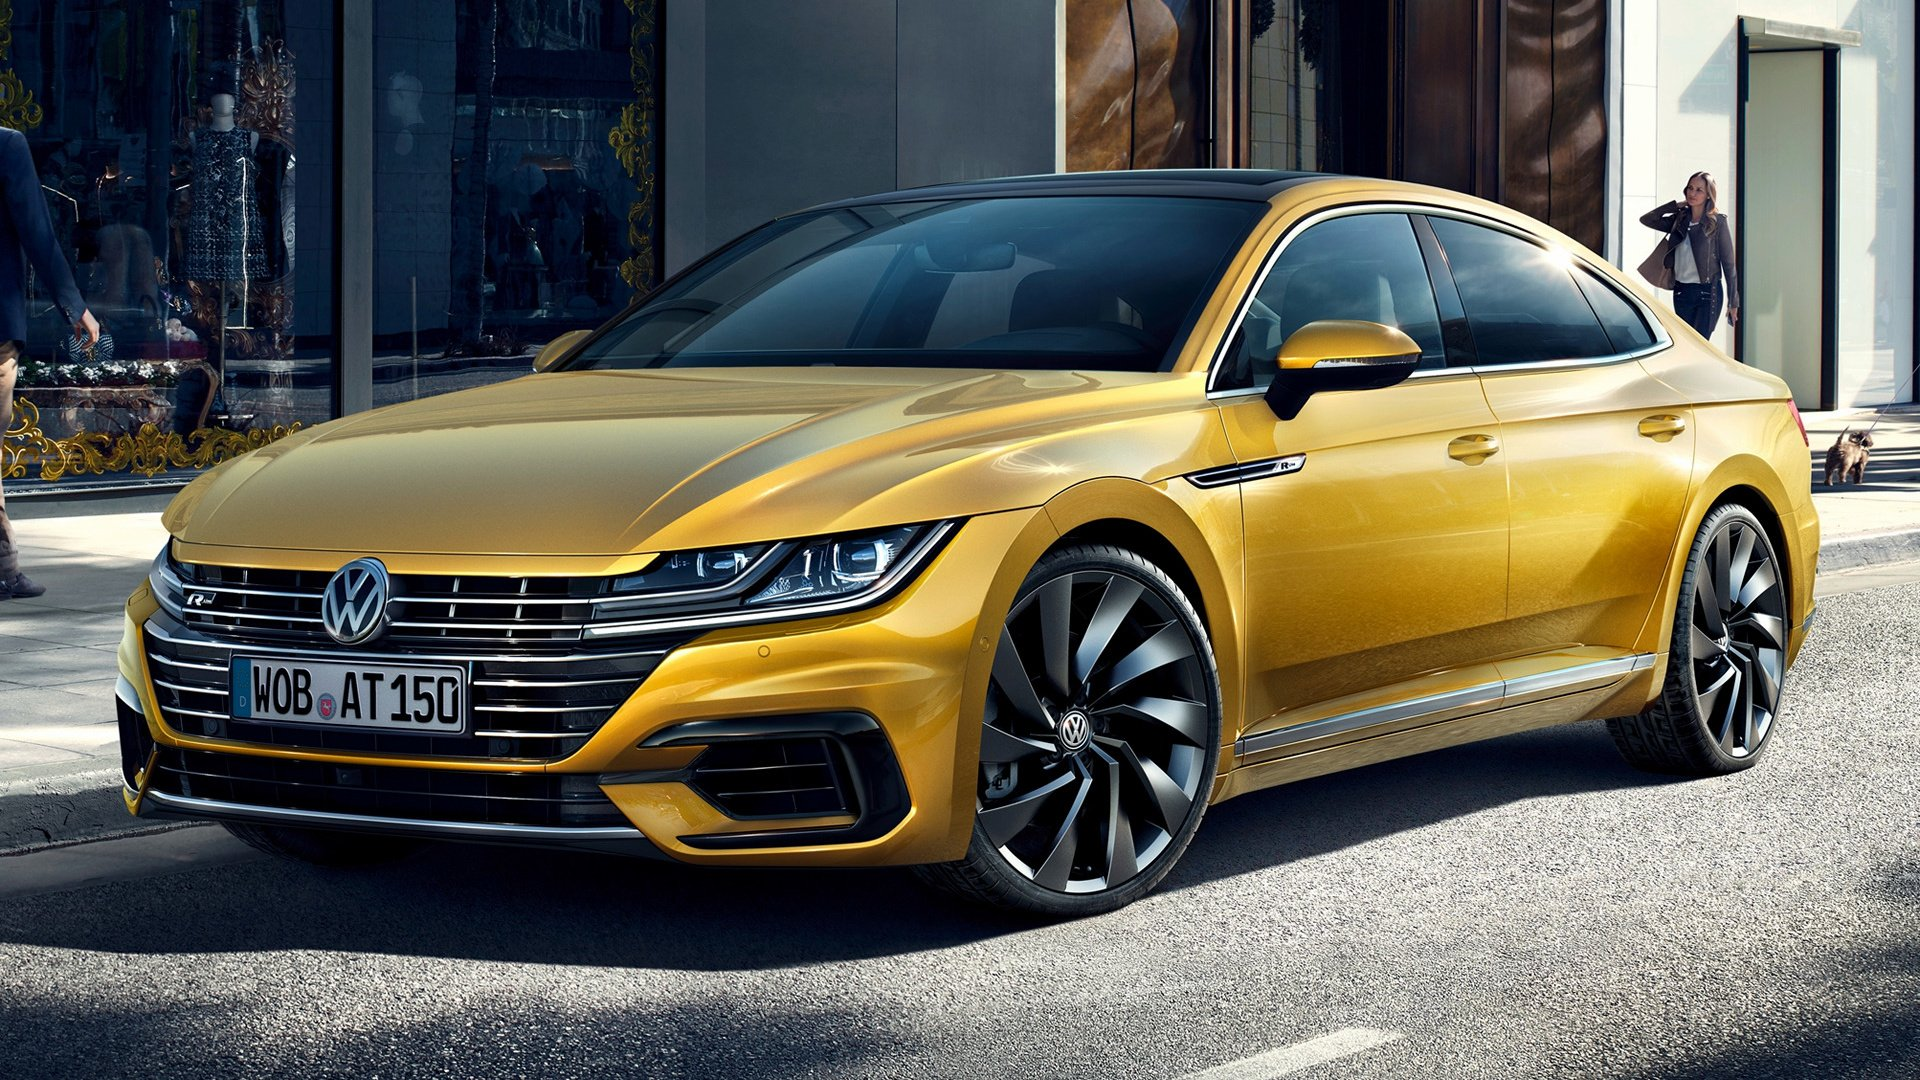 1920x1080 - Volkswagen Arteon Wallpapers 6